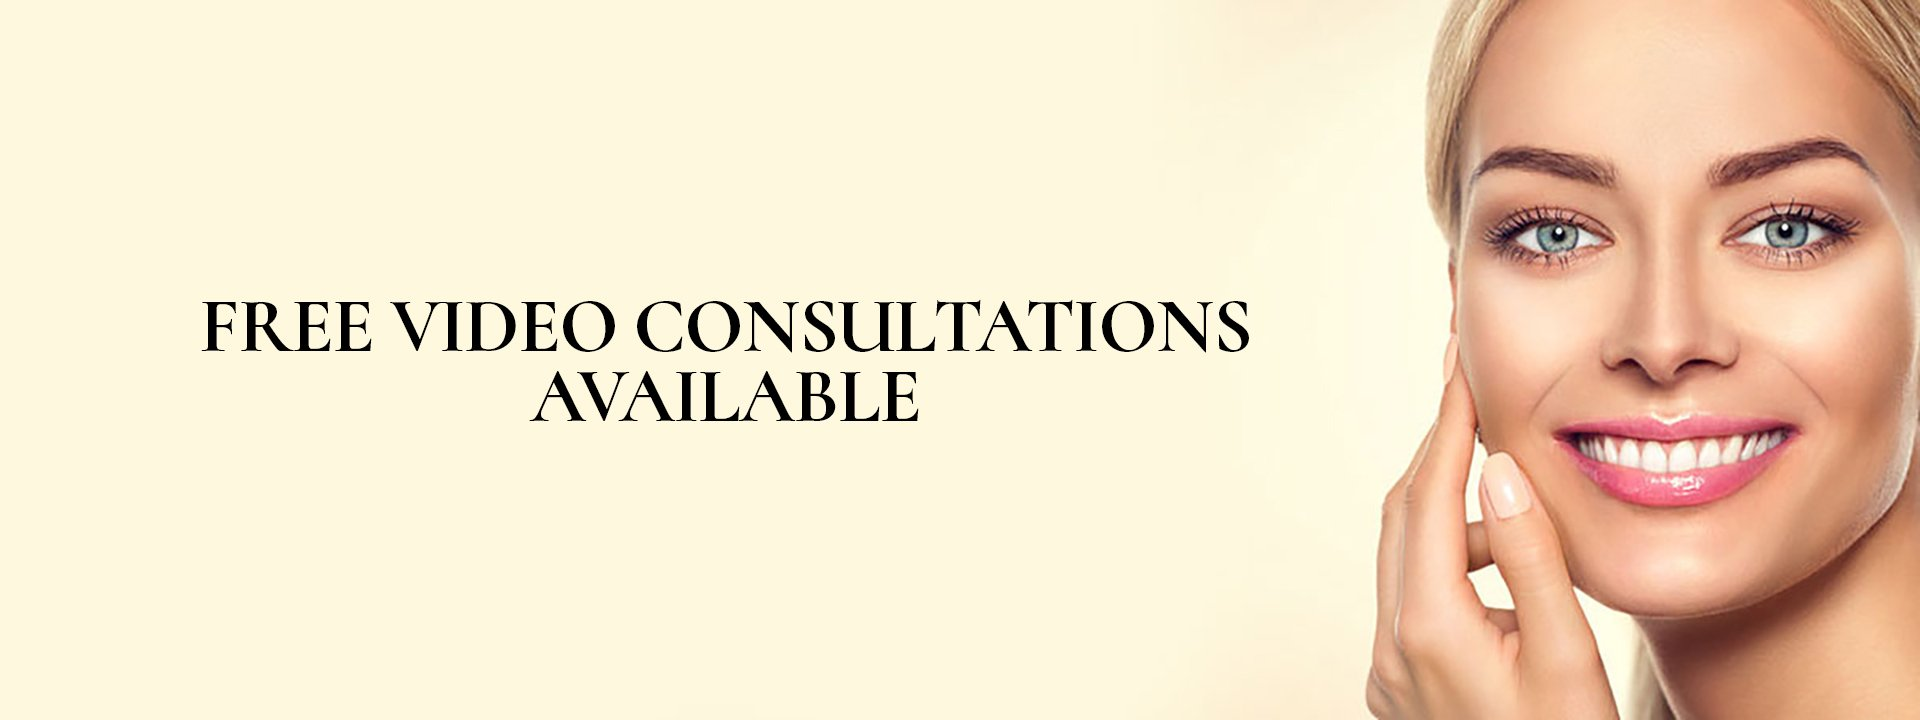 free Video Consultations Available 1